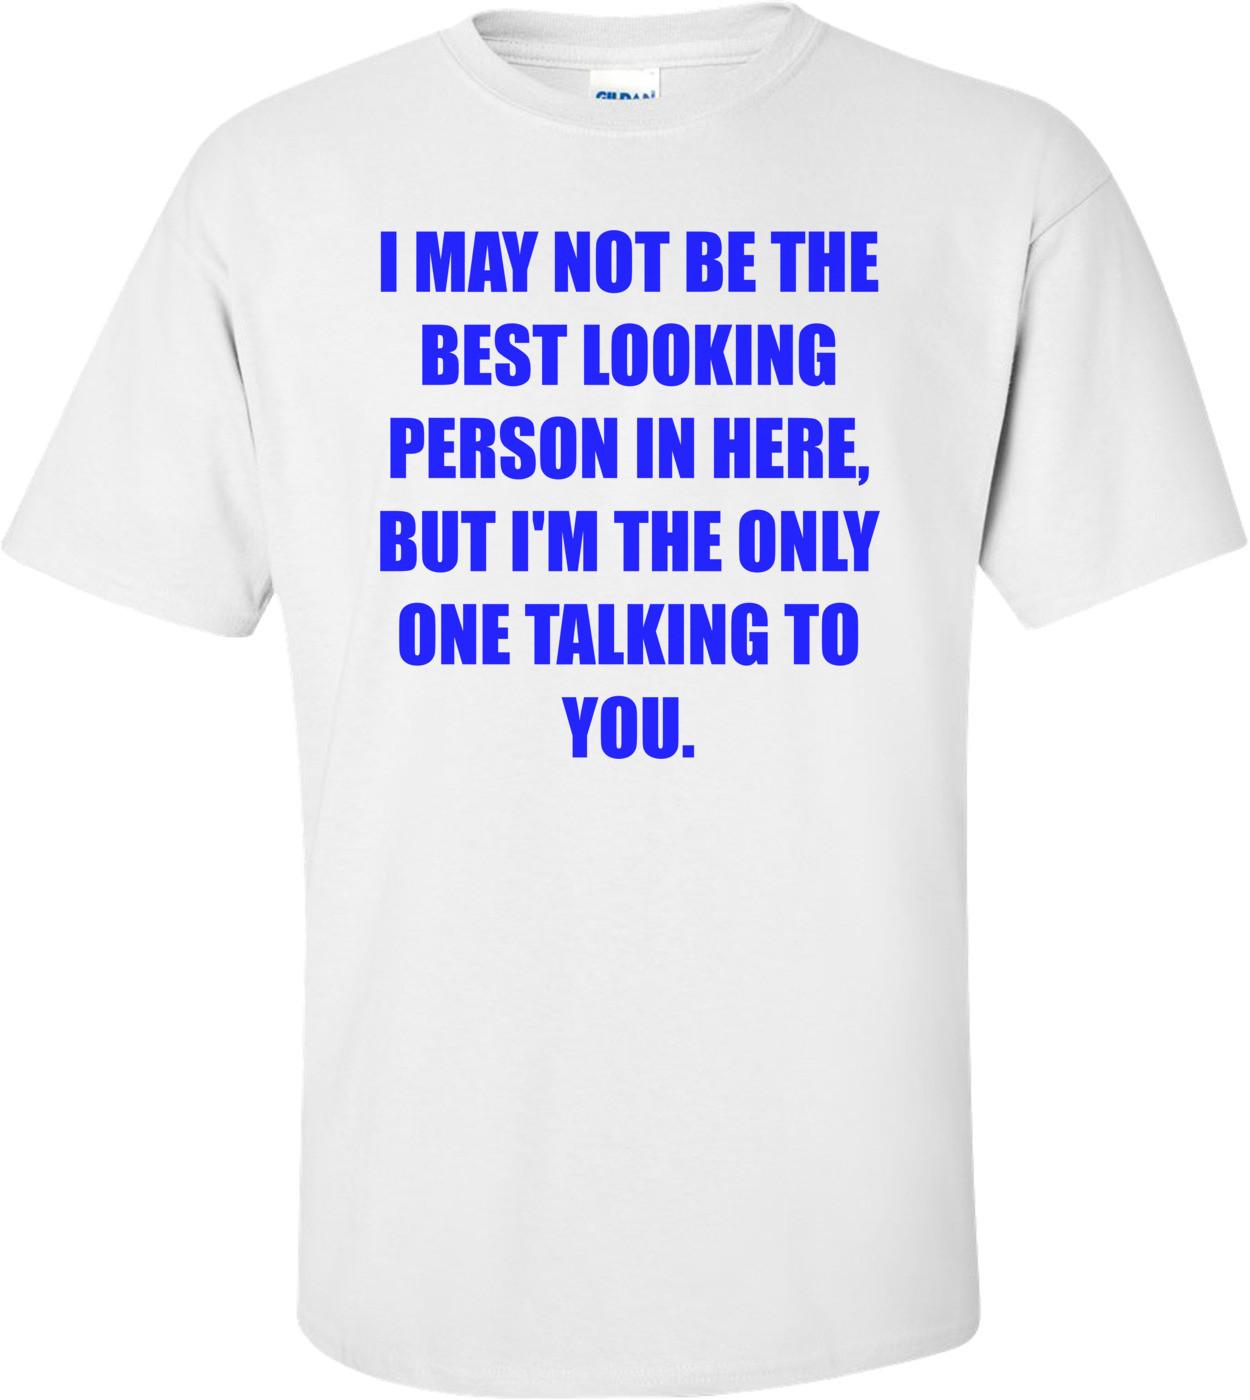 I MAY NOT BE THE BEST LOOKING PERSON IN HERE, BUT I'M THE ONLY ONE TALKING TO YOU. Shirt